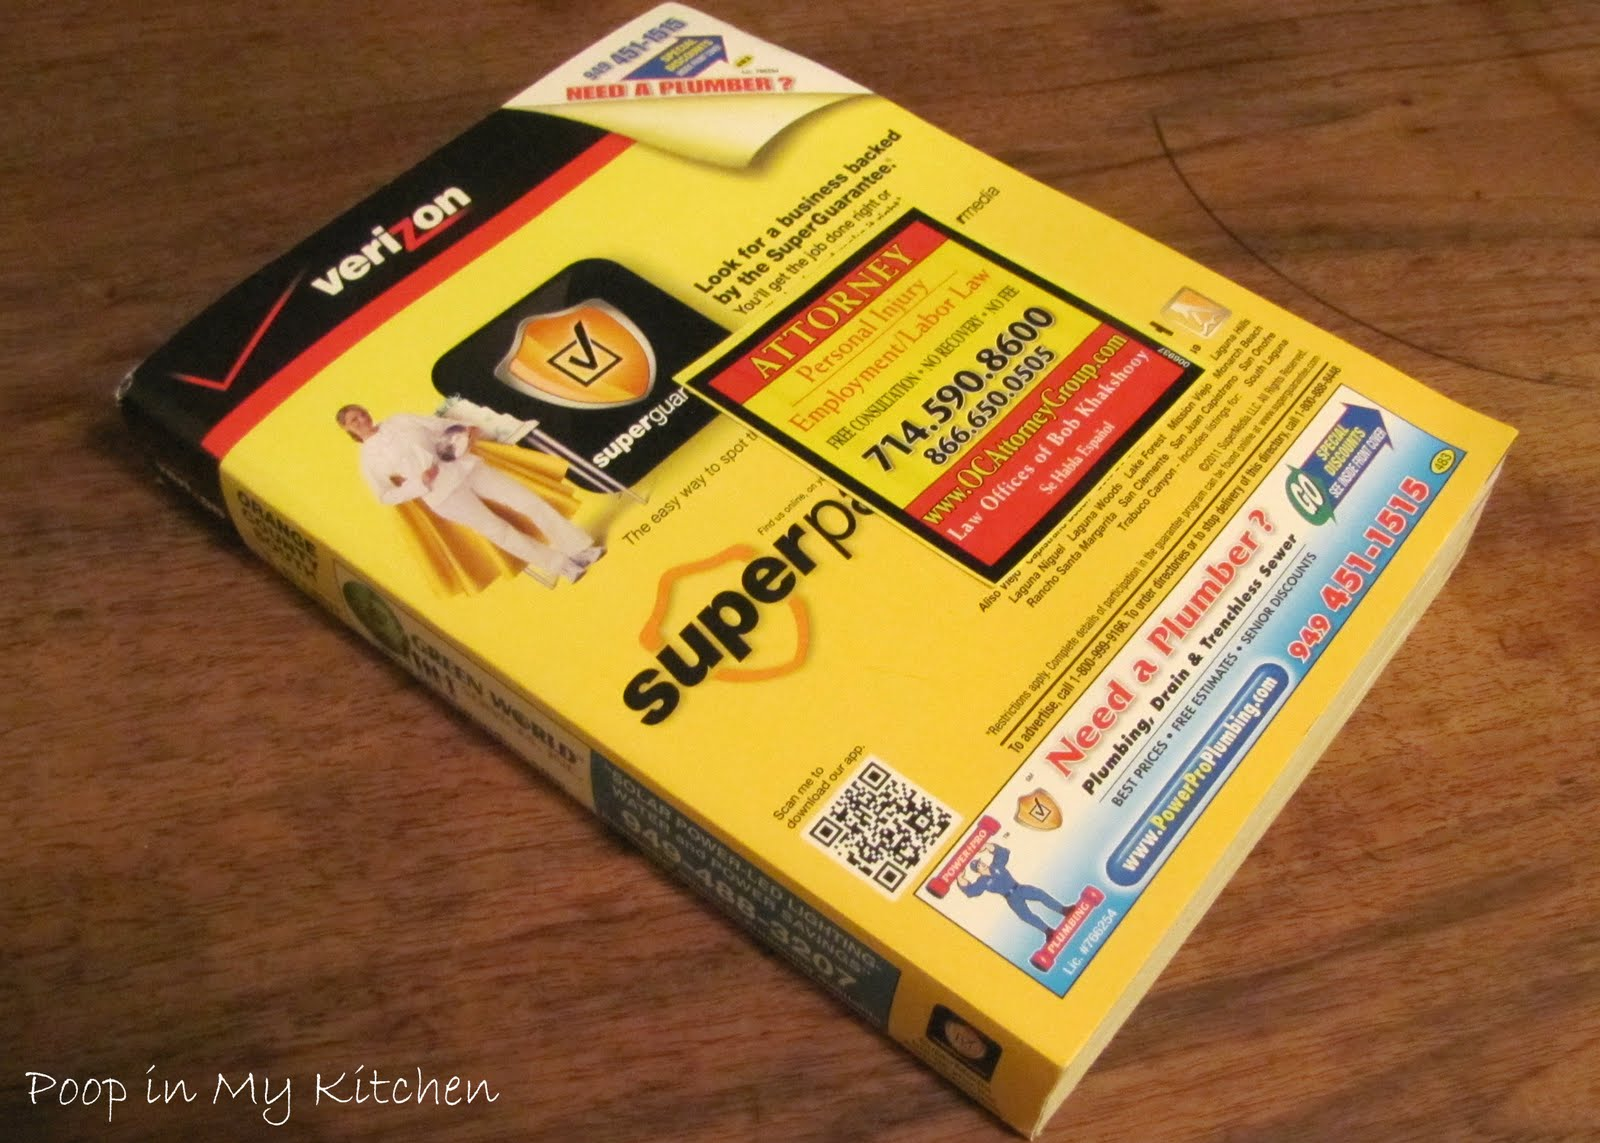 Poop in My Kitchen: Hot Legs' Phone Book and You'll Never Guess What Else